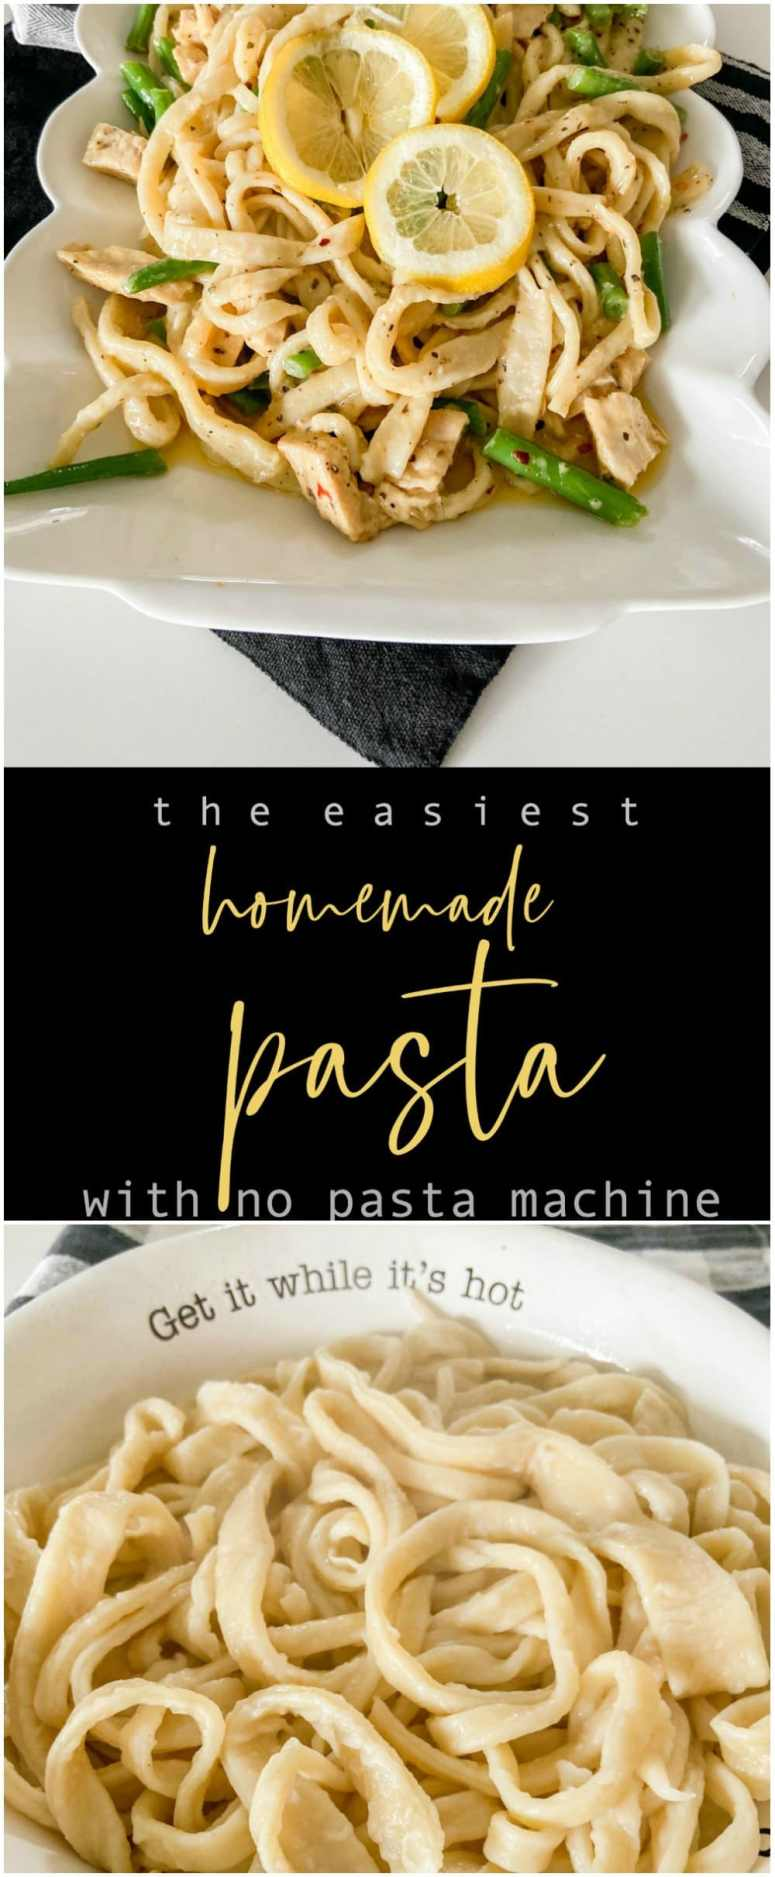 The easiest homemade pasta recipe with no machine! You only need a few simple ingredients to make your own pasta. Create spaghetti, fettuccine or even ravioli with this easy recipe and no machine is needed!